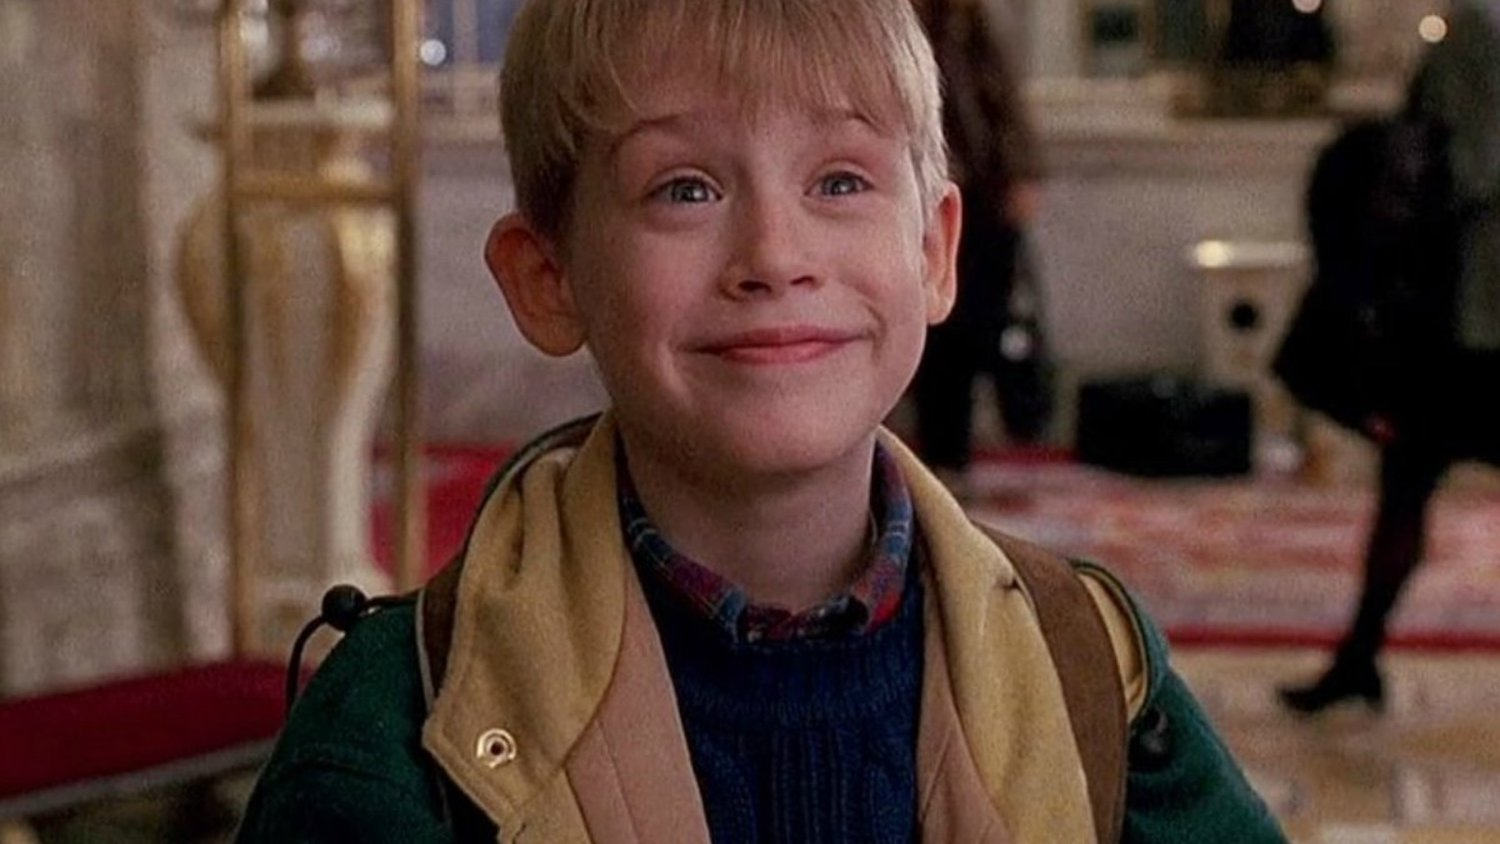 , Disney Drafts Plans To Reboot 'Home Alone' And 'Night At The Museum' For Disney+, Details Inside